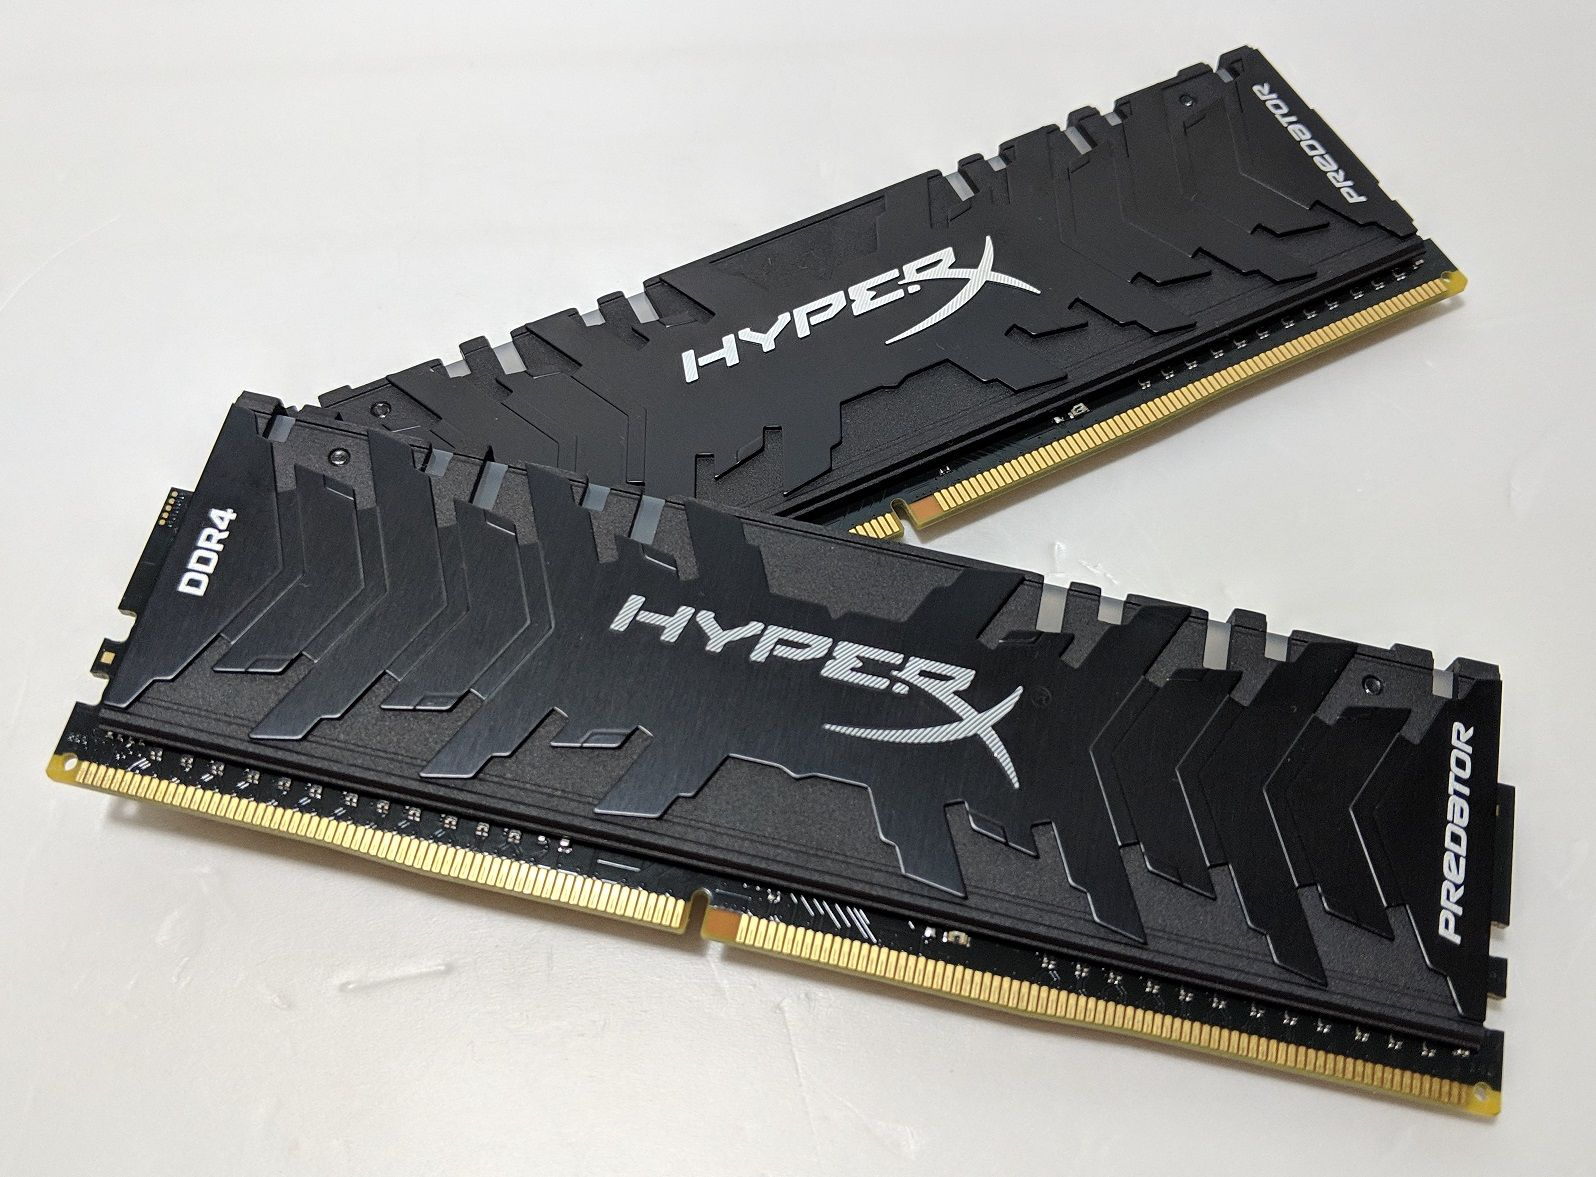 Awesome Looking Predator Rgb Memory From Hyperx Kingston Ddr4 Ram Gaming Pc Unboxing Review